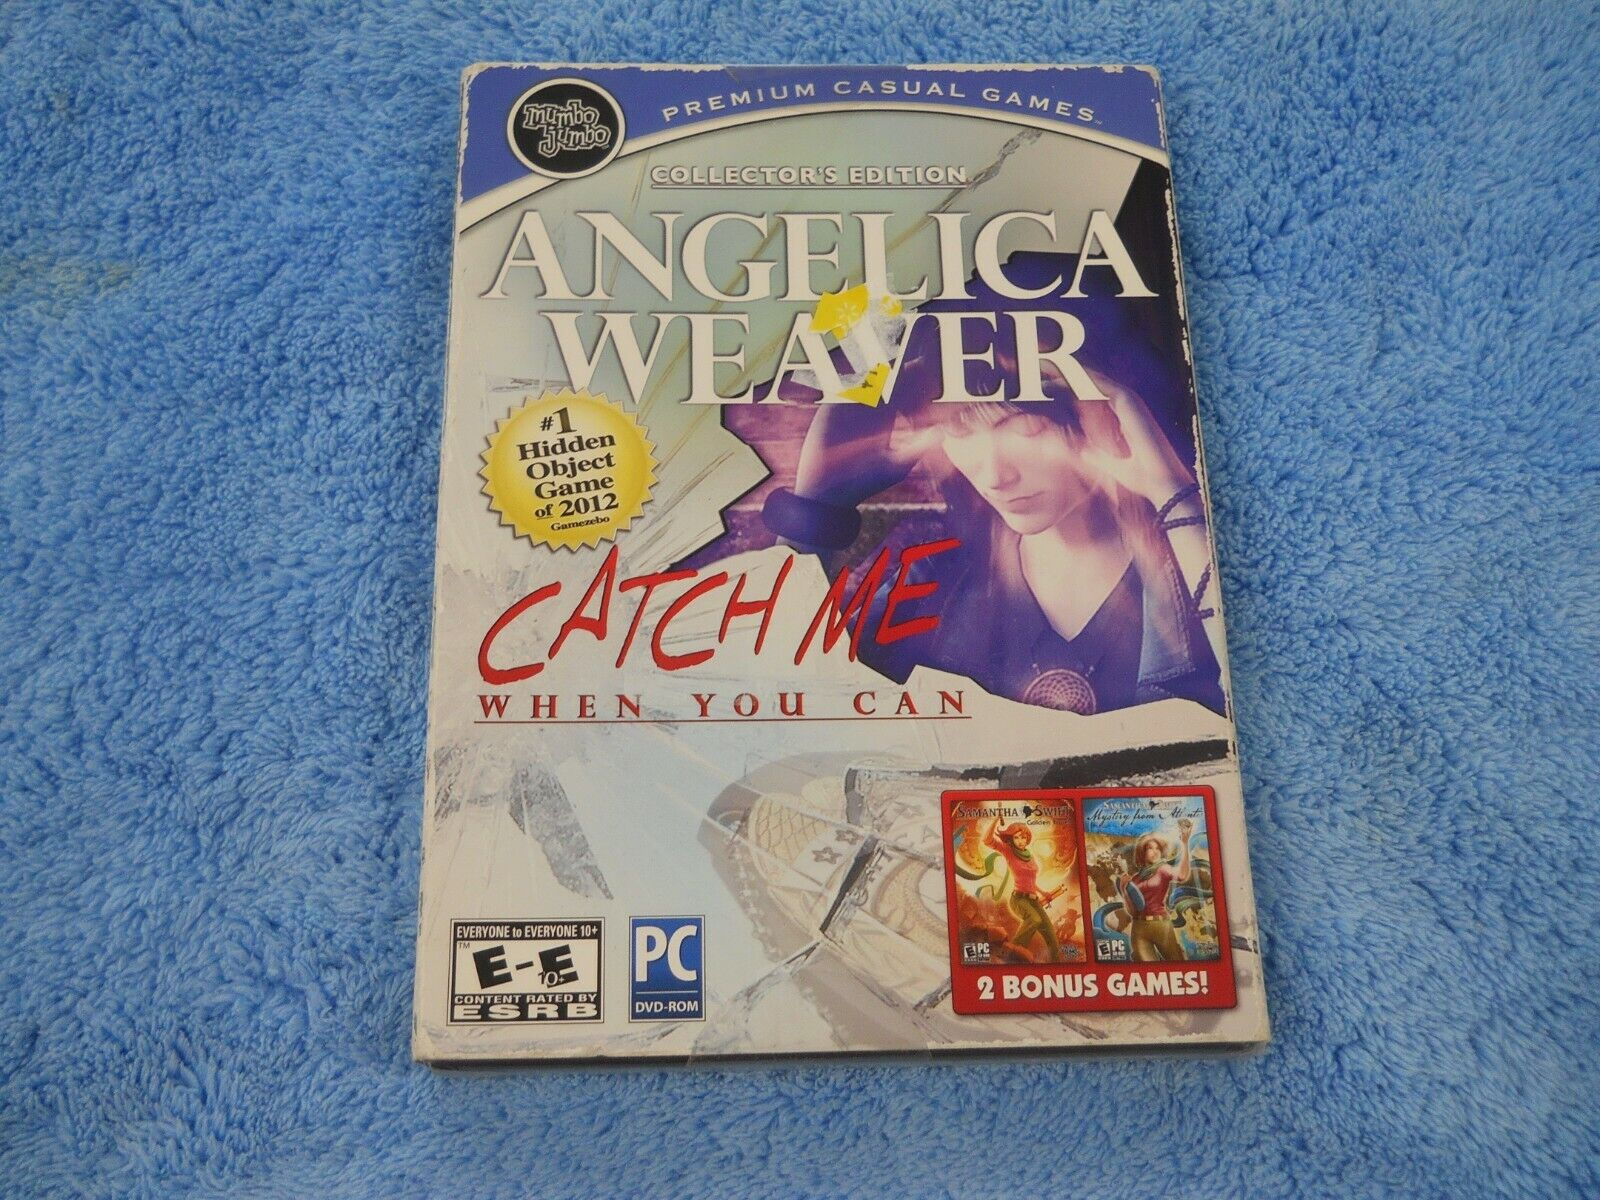 computer games windows 7 - Angelica Weaver Catch Me When You Can PC Games Window 10 8 7 XP Computer mystery